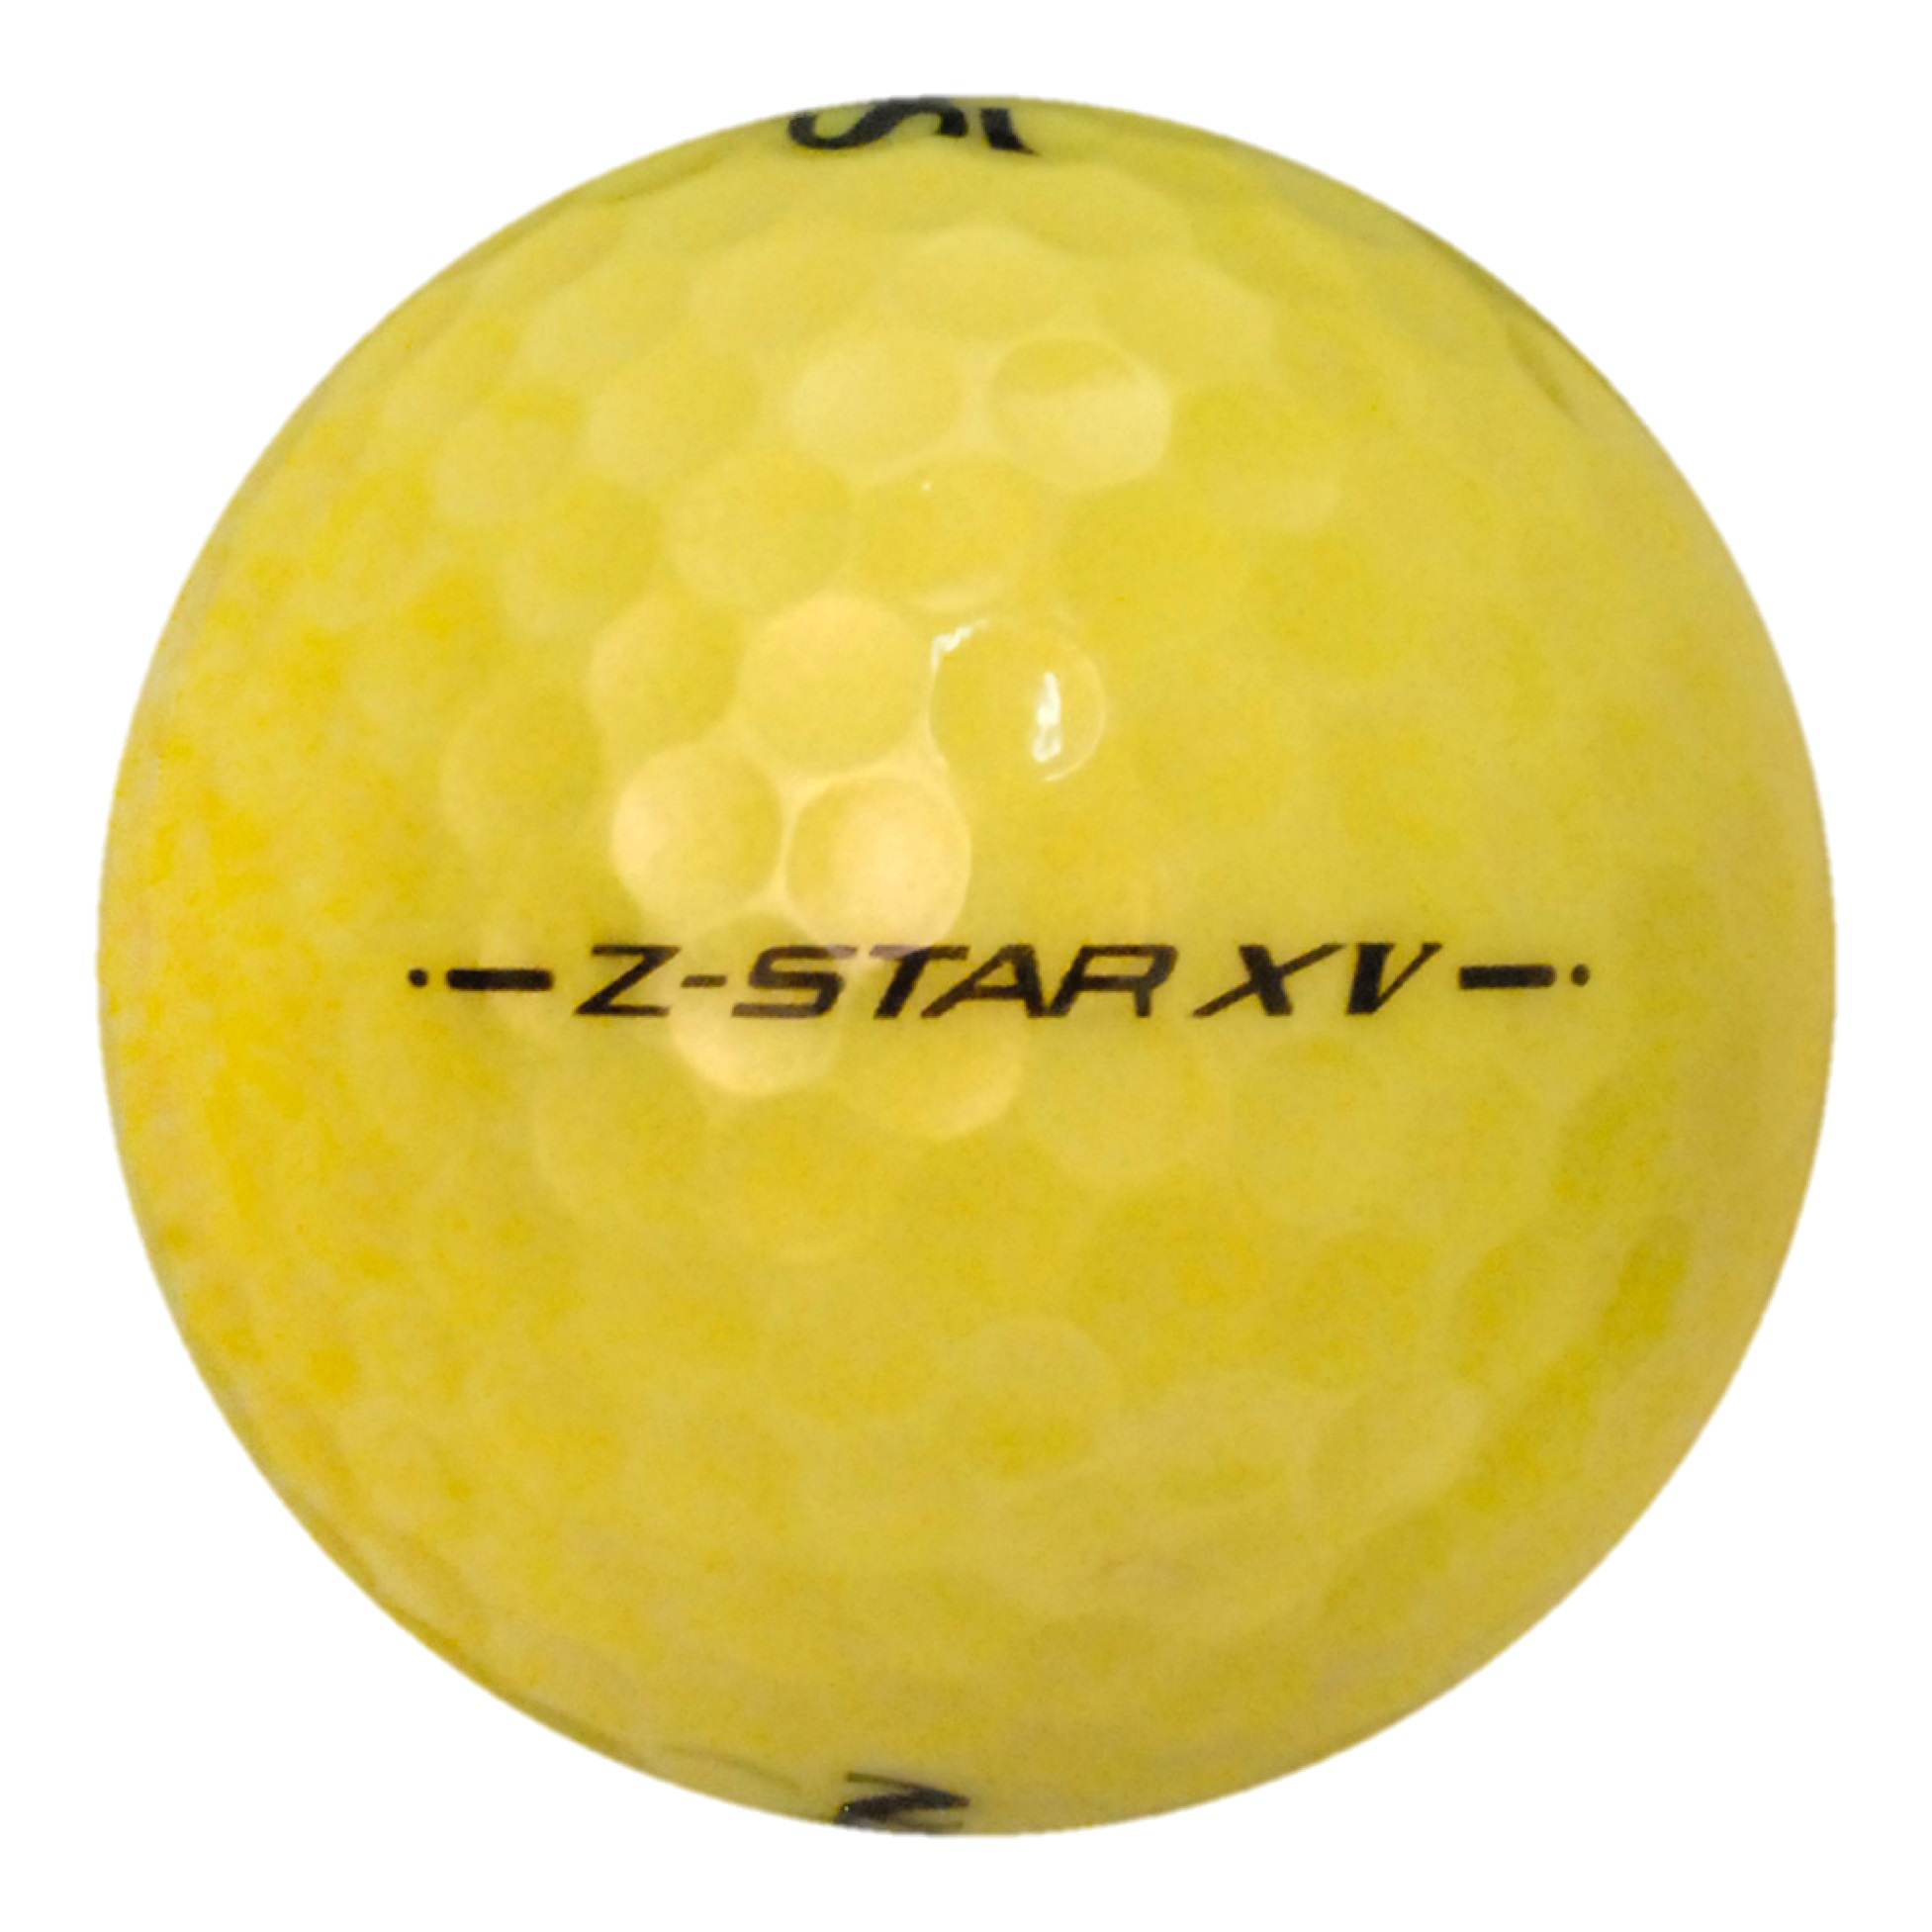 Srixon Z-Star XV Yellow - Value (AAA) Grade - Recycled (Used) Golf Balls - 50 Pack